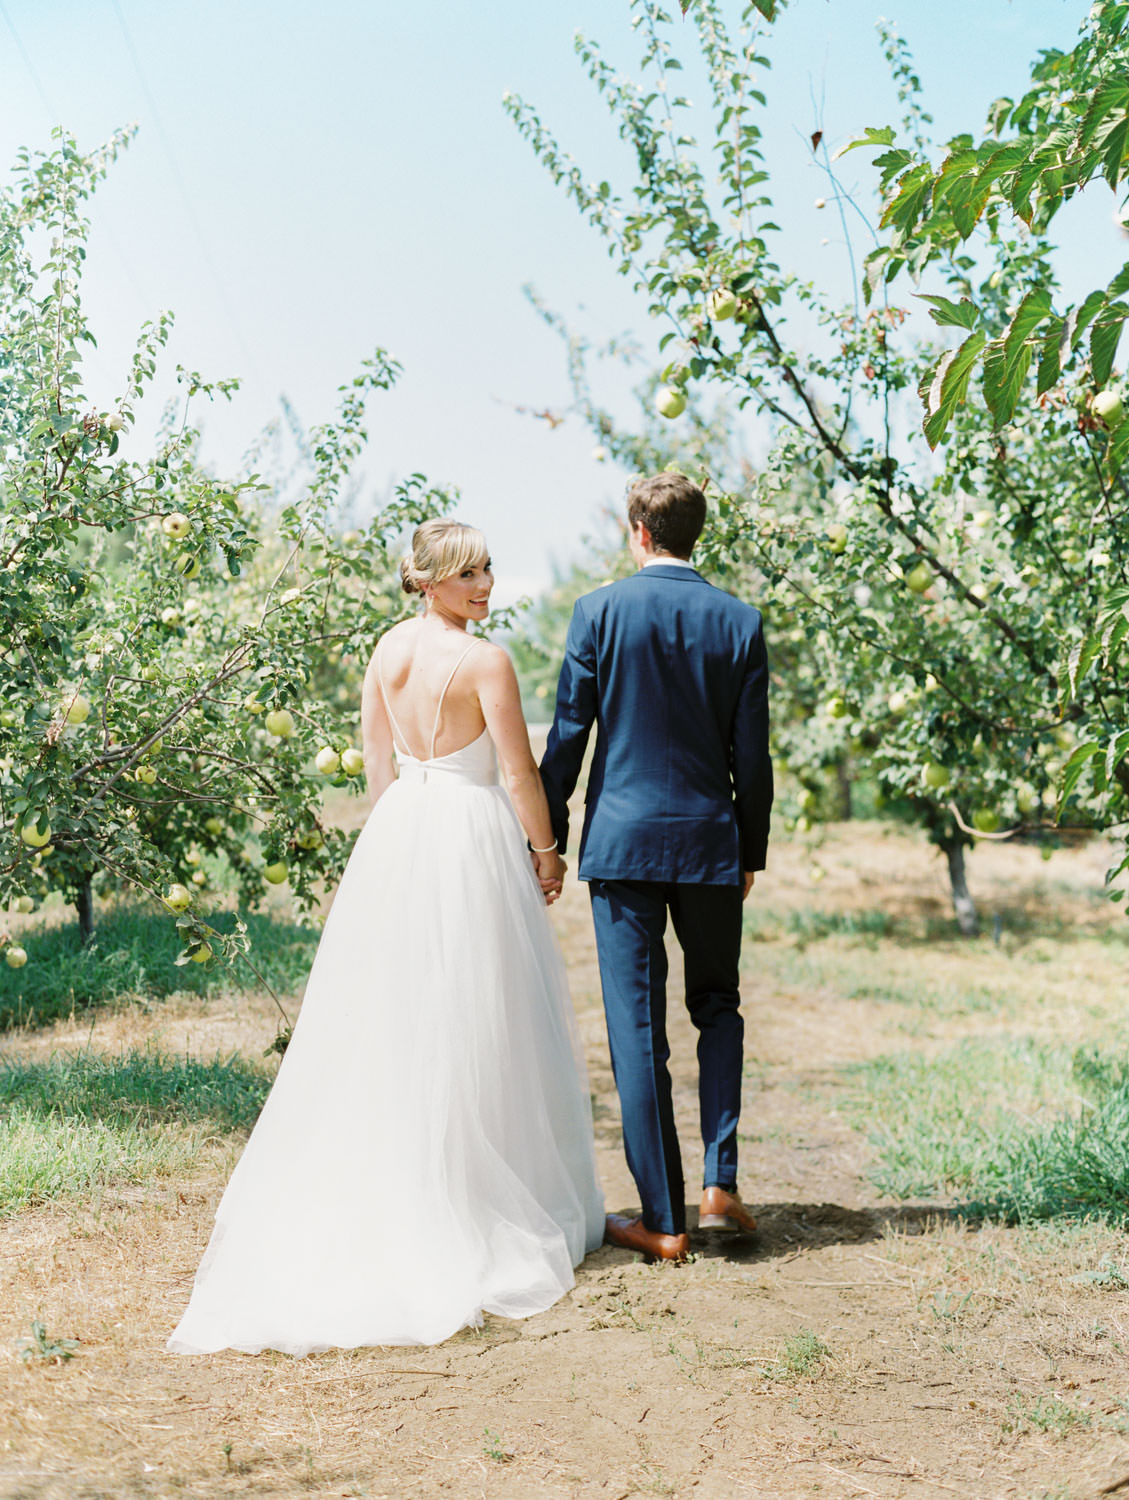 Bride in a classic Mikaella Bridal gown walking with the groom in a navy linen suit. Full Belly Farm on Martha Stewart Weddings by film photographer Cavin Elizabeth Photography